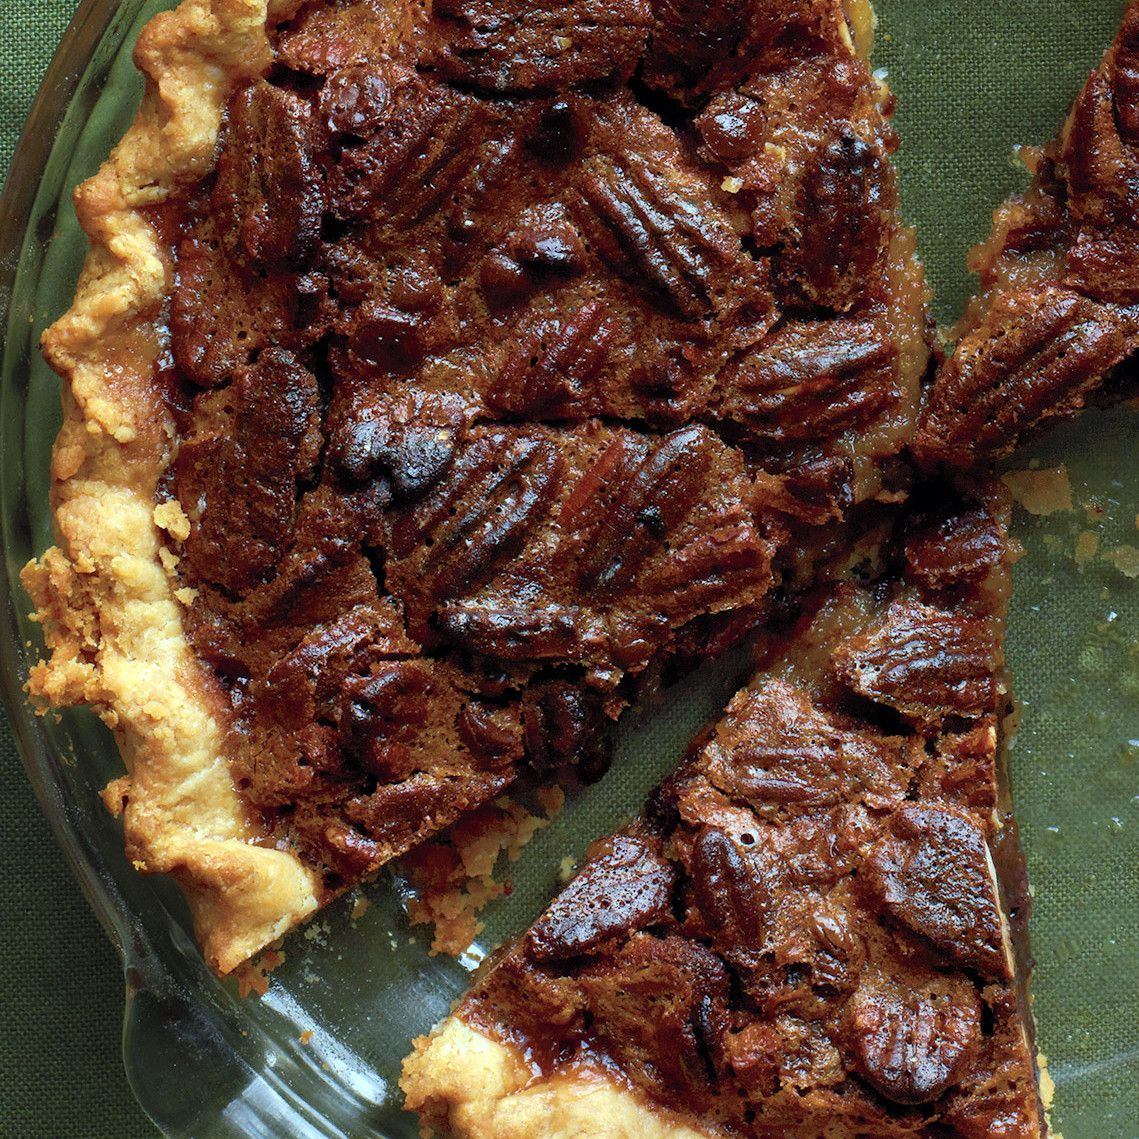 For a sure-fire winner this time of year, nothing beats pecan pie. Let your little helpers add the pecans and chocolate chips, then measure and mix the easy filling ingredients.